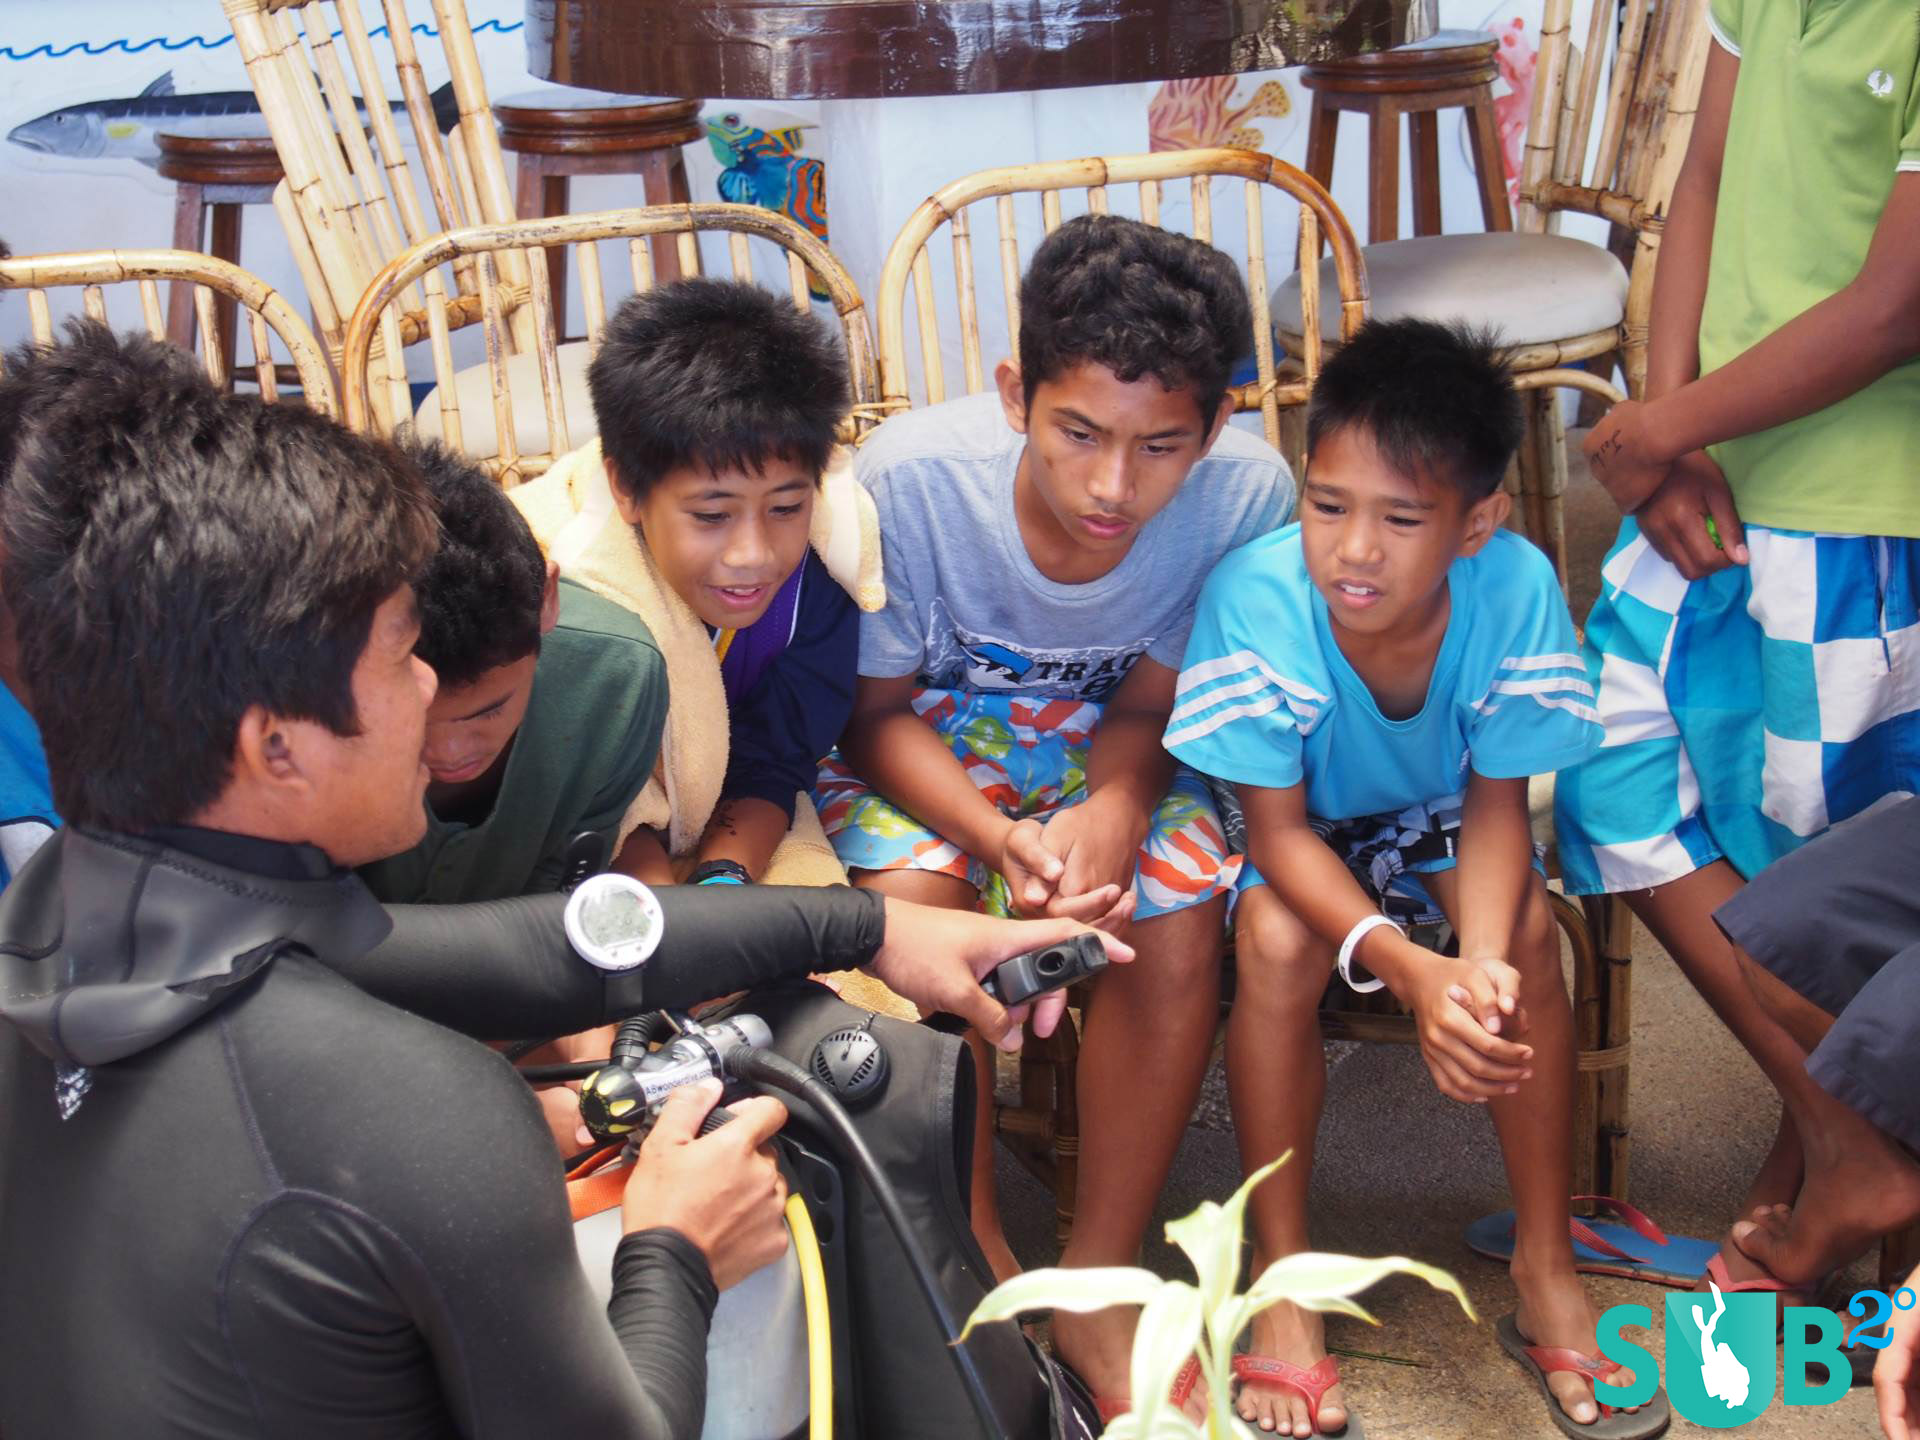 Kids listening intently on how scuba gear works.